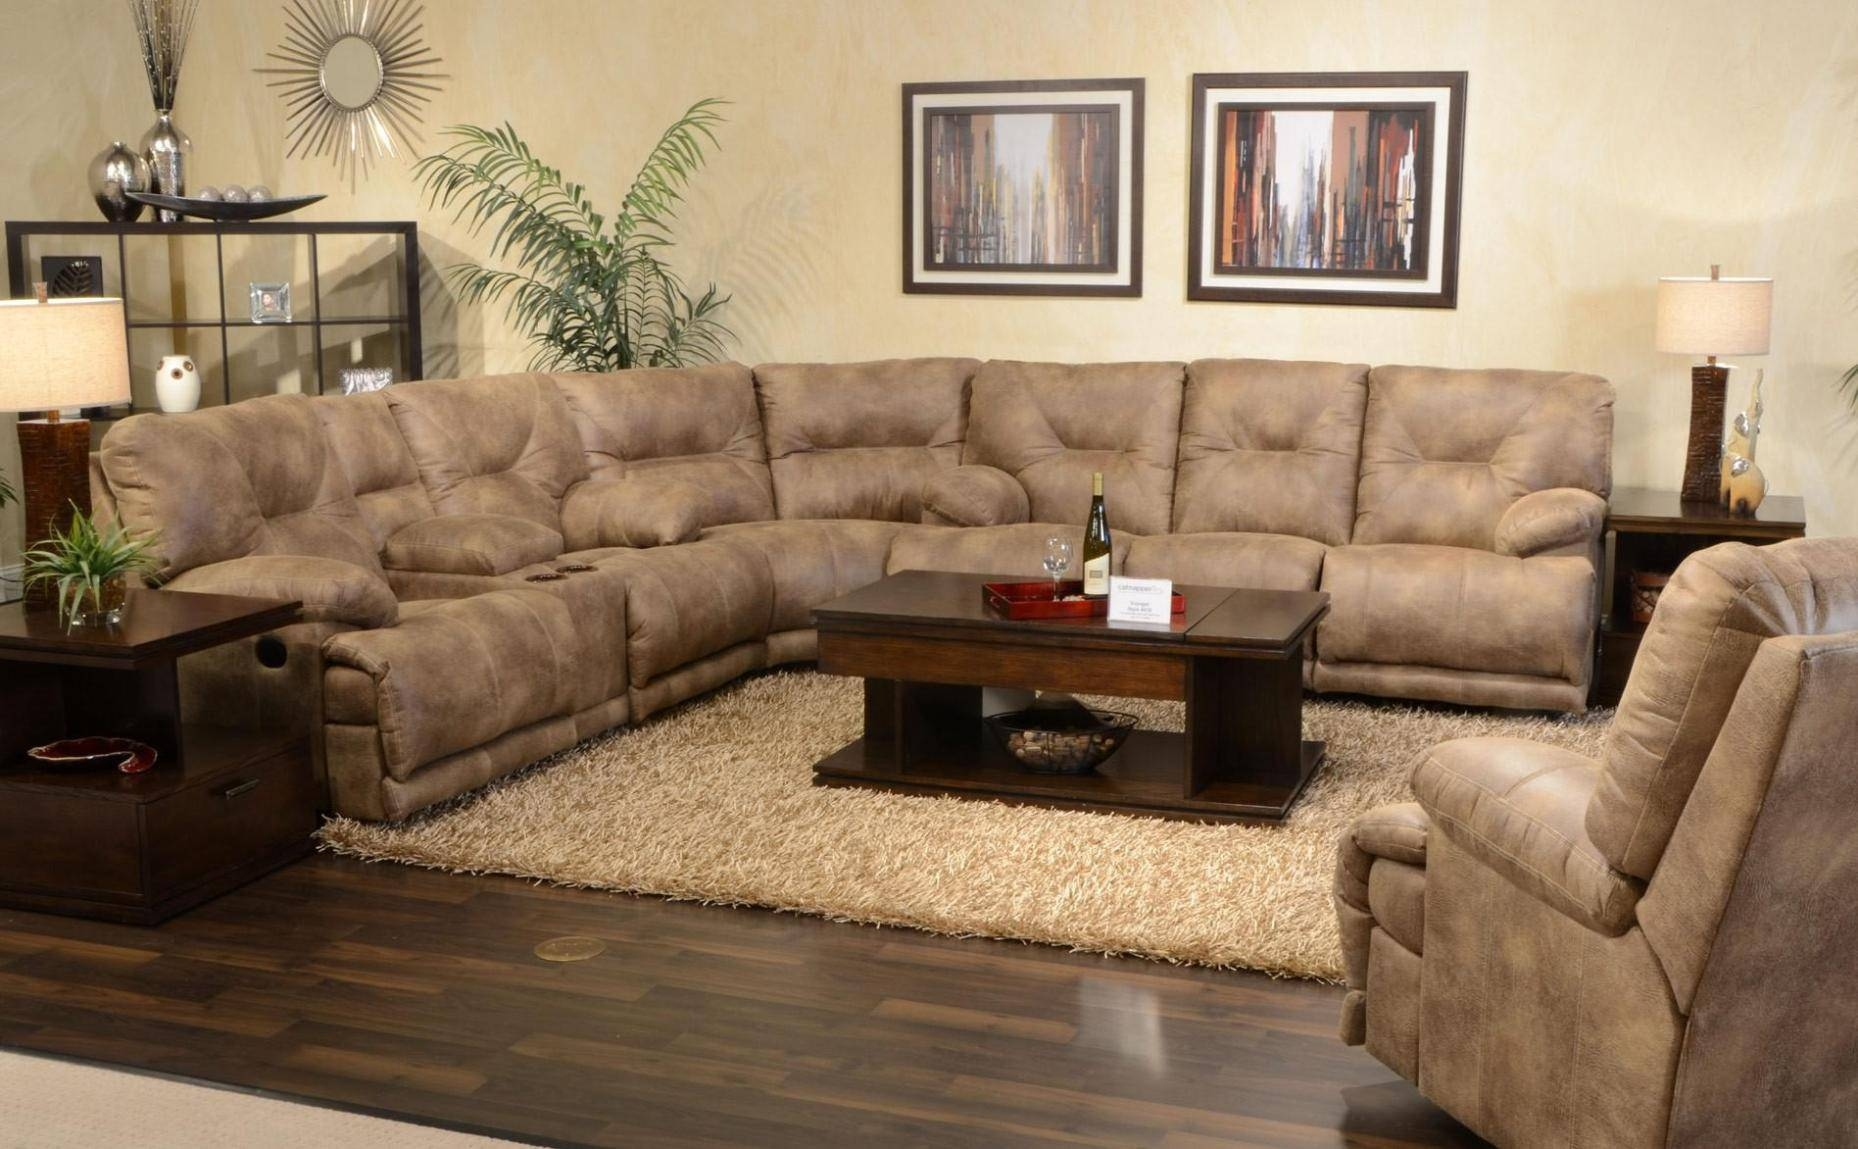 The Most Popular Fabric Sectional Sofa With Recliner 69 For Your intended for Closeout Sectional Sofas (Image 23 of 30)